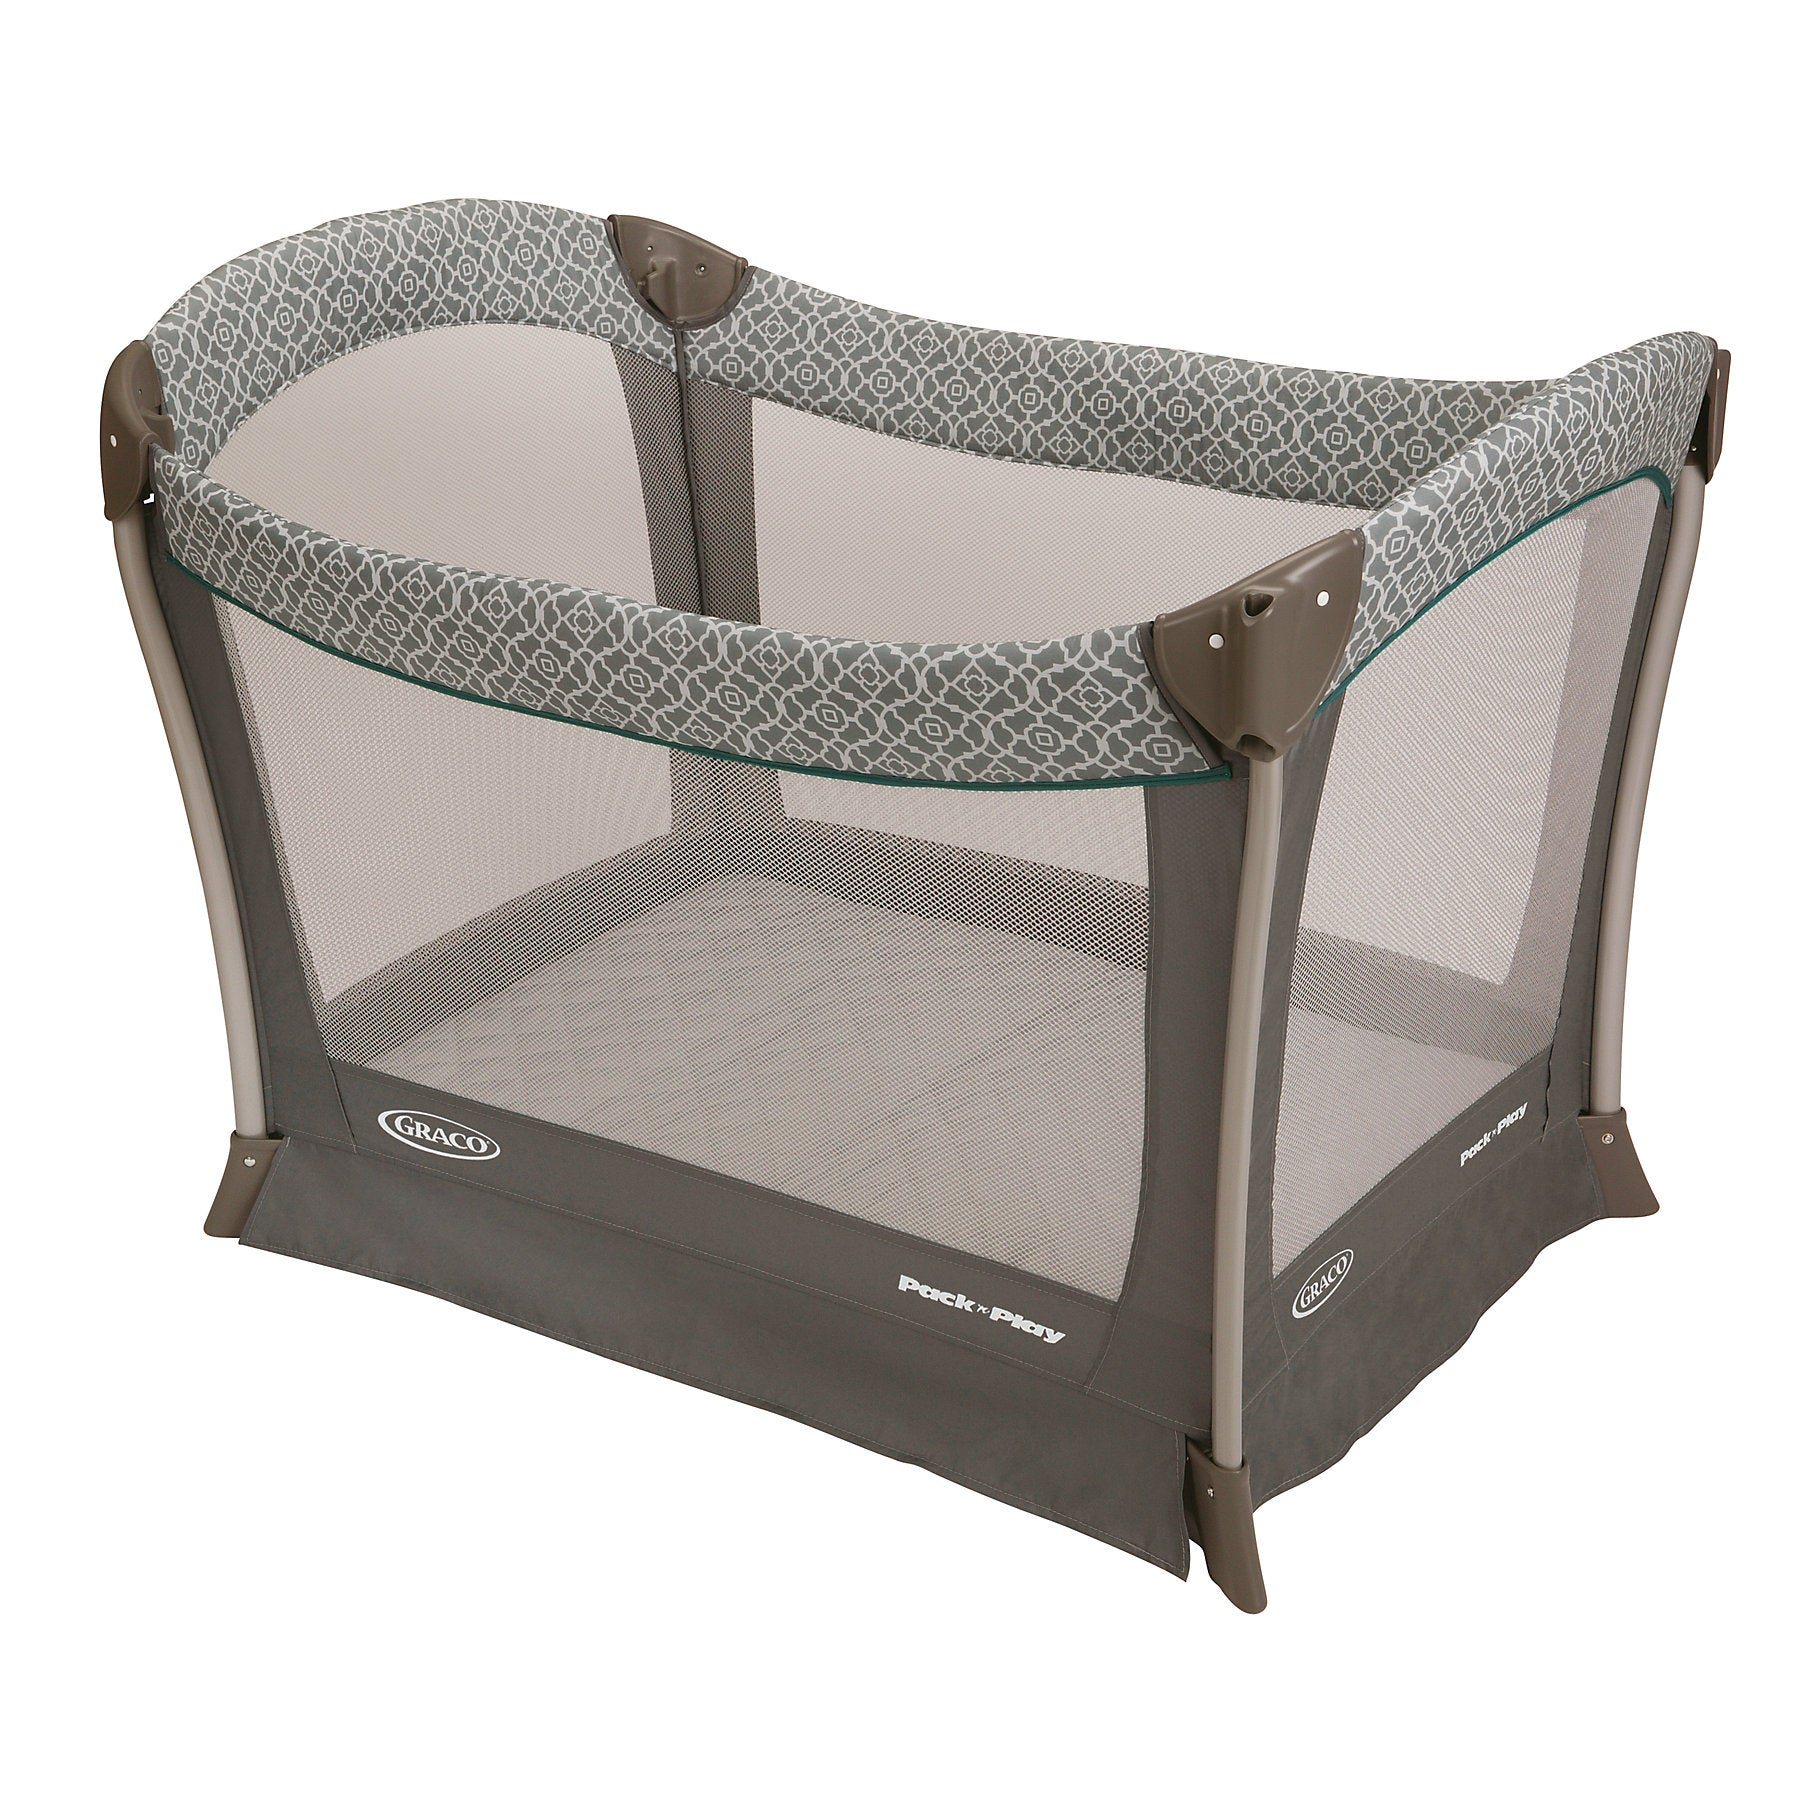 b6ade11e565d Shop Graco Day2Night Sleep System Playard Set in Ardmore - Free Shipping  Today - Overstock - 7671800